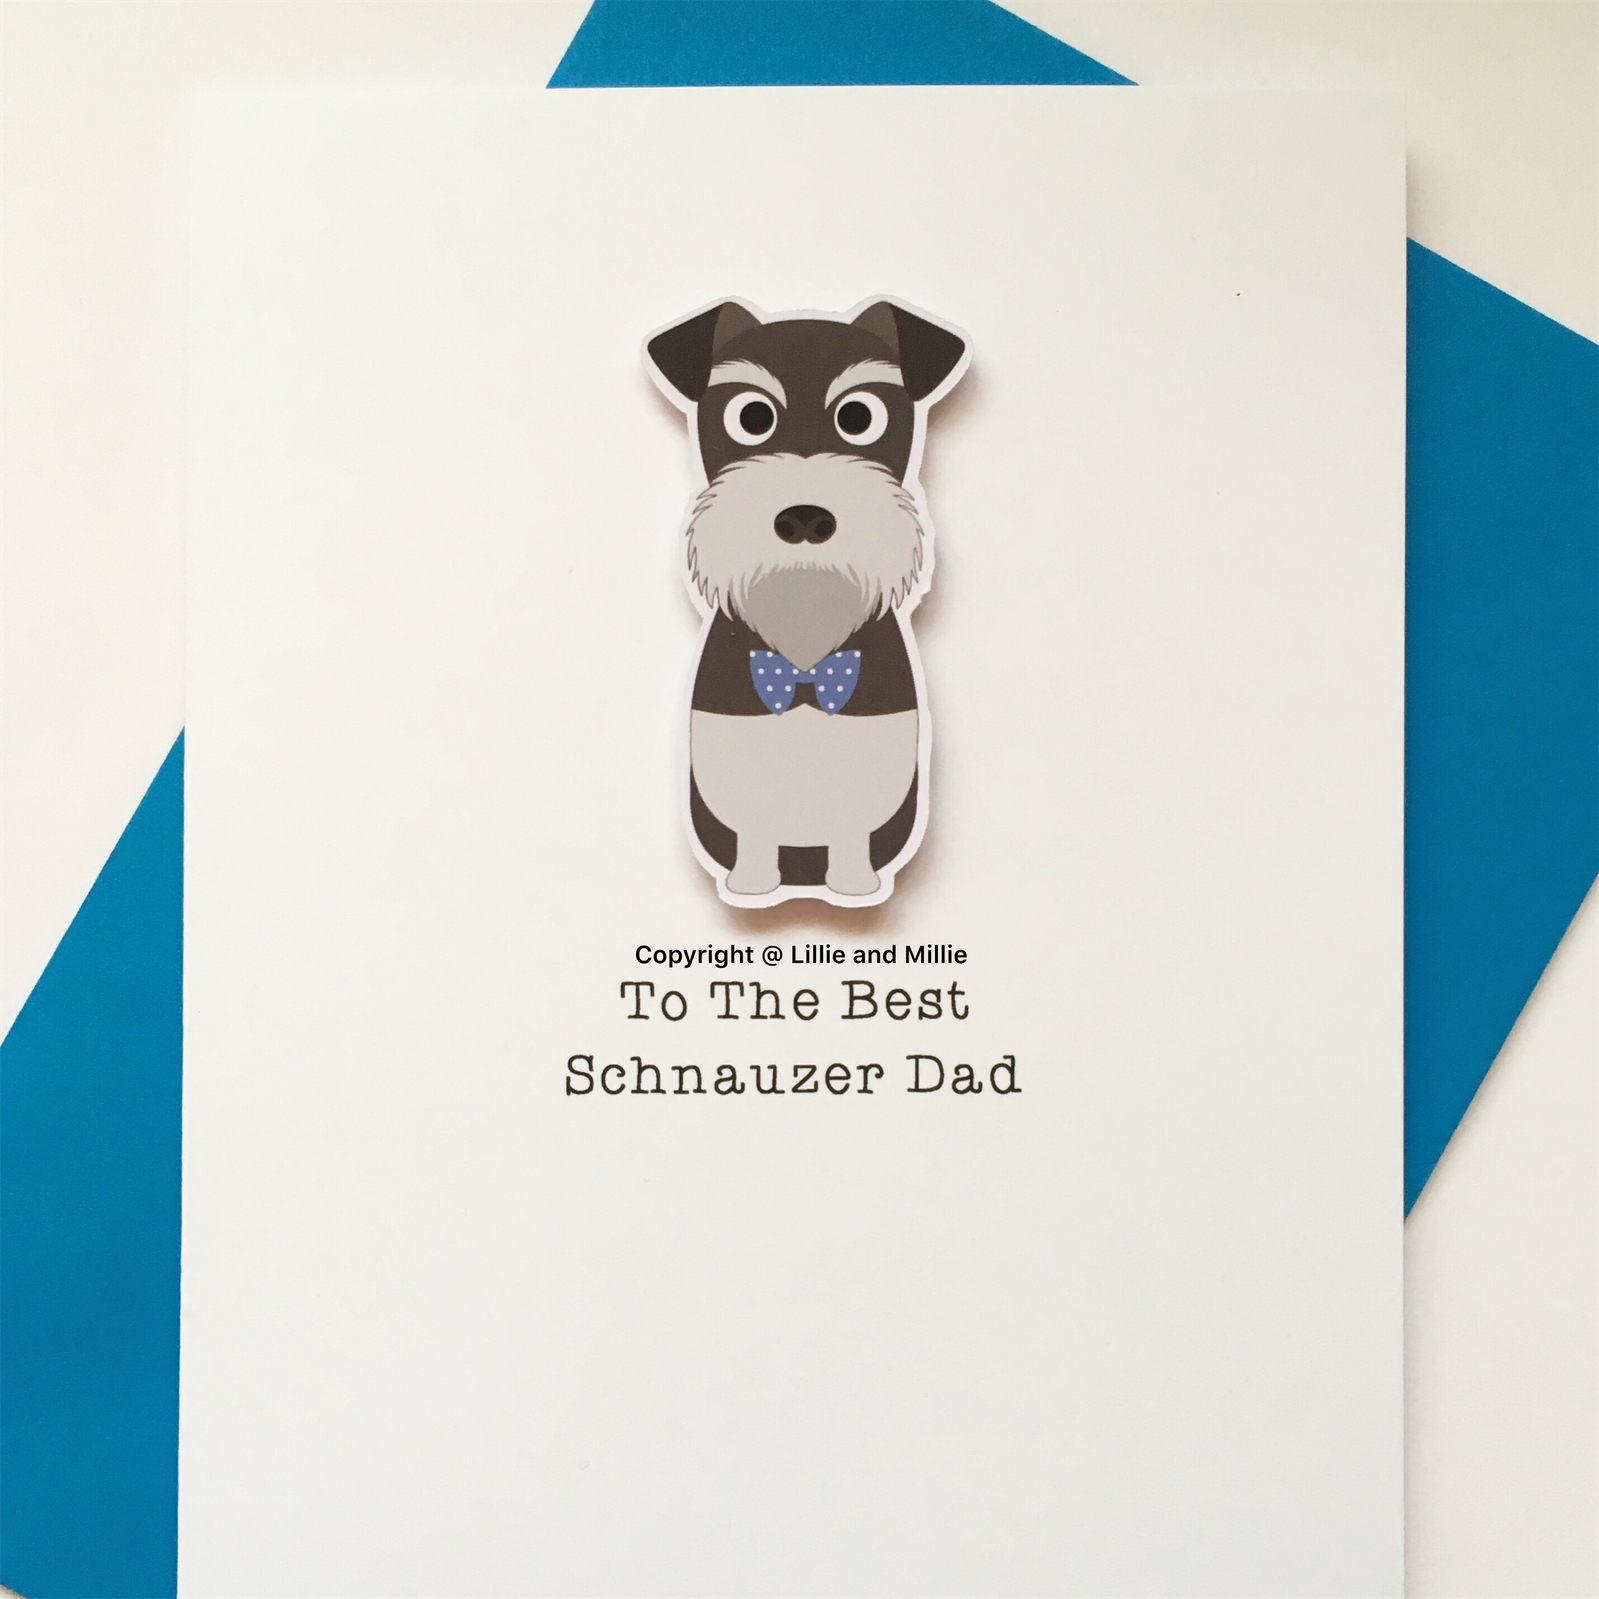 Cute and Cuddly Pepper and Salt To the Best Schnauzer Dad Card